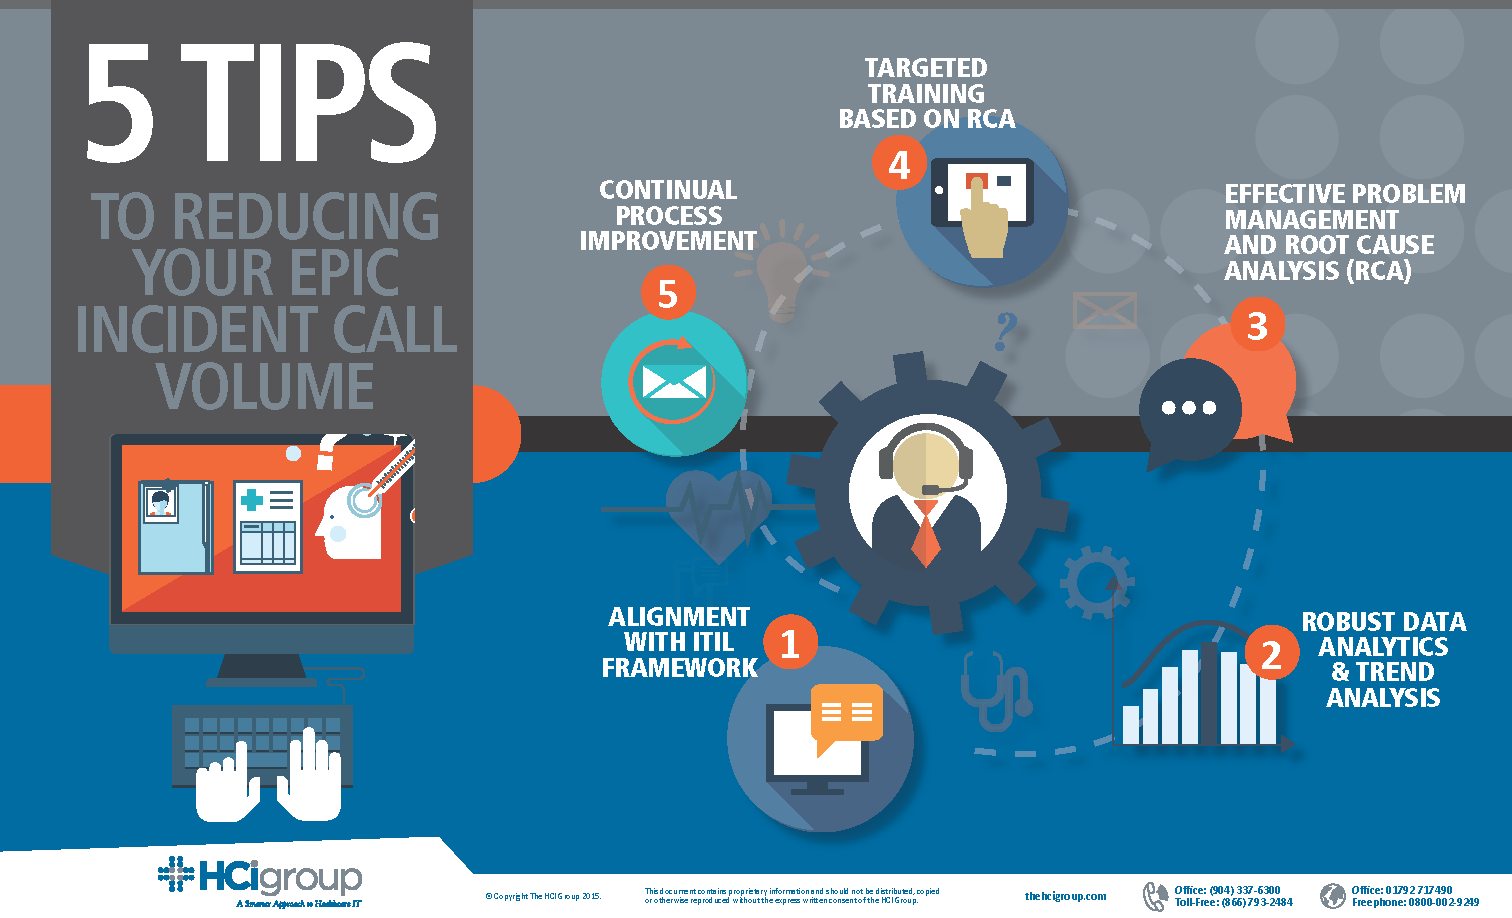 The HCI Group | 5 Tips to Reducing Epic Incident Call Volumes